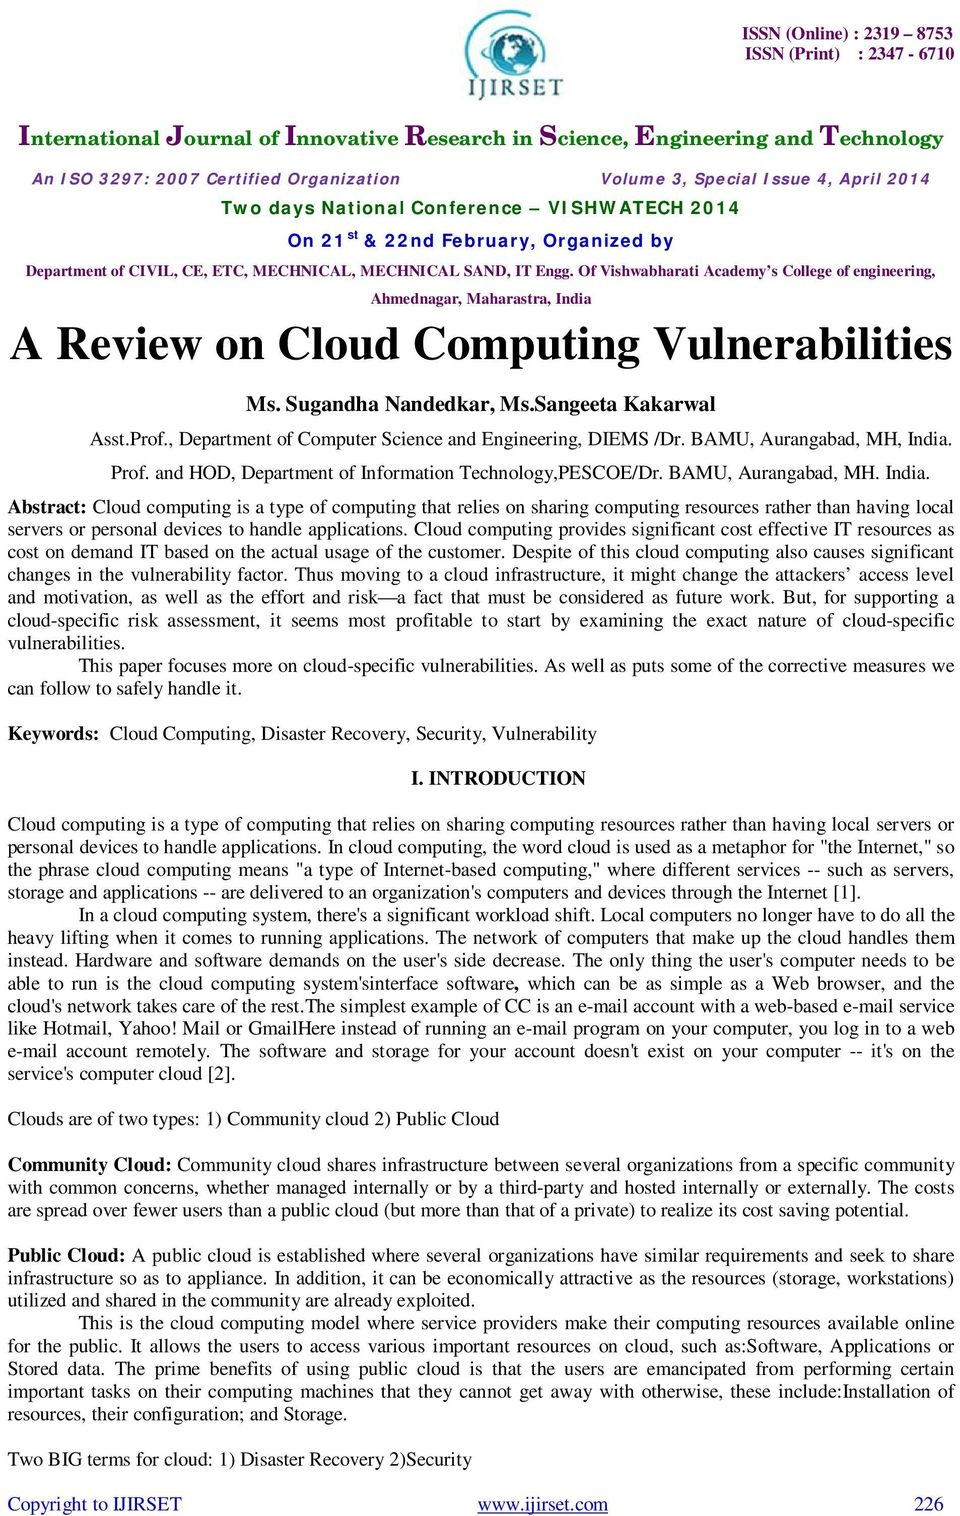 Abstract: Cloud computing is a type of computing that relies on sharing computing resources rather than having local servers or personal devices to handle applications.